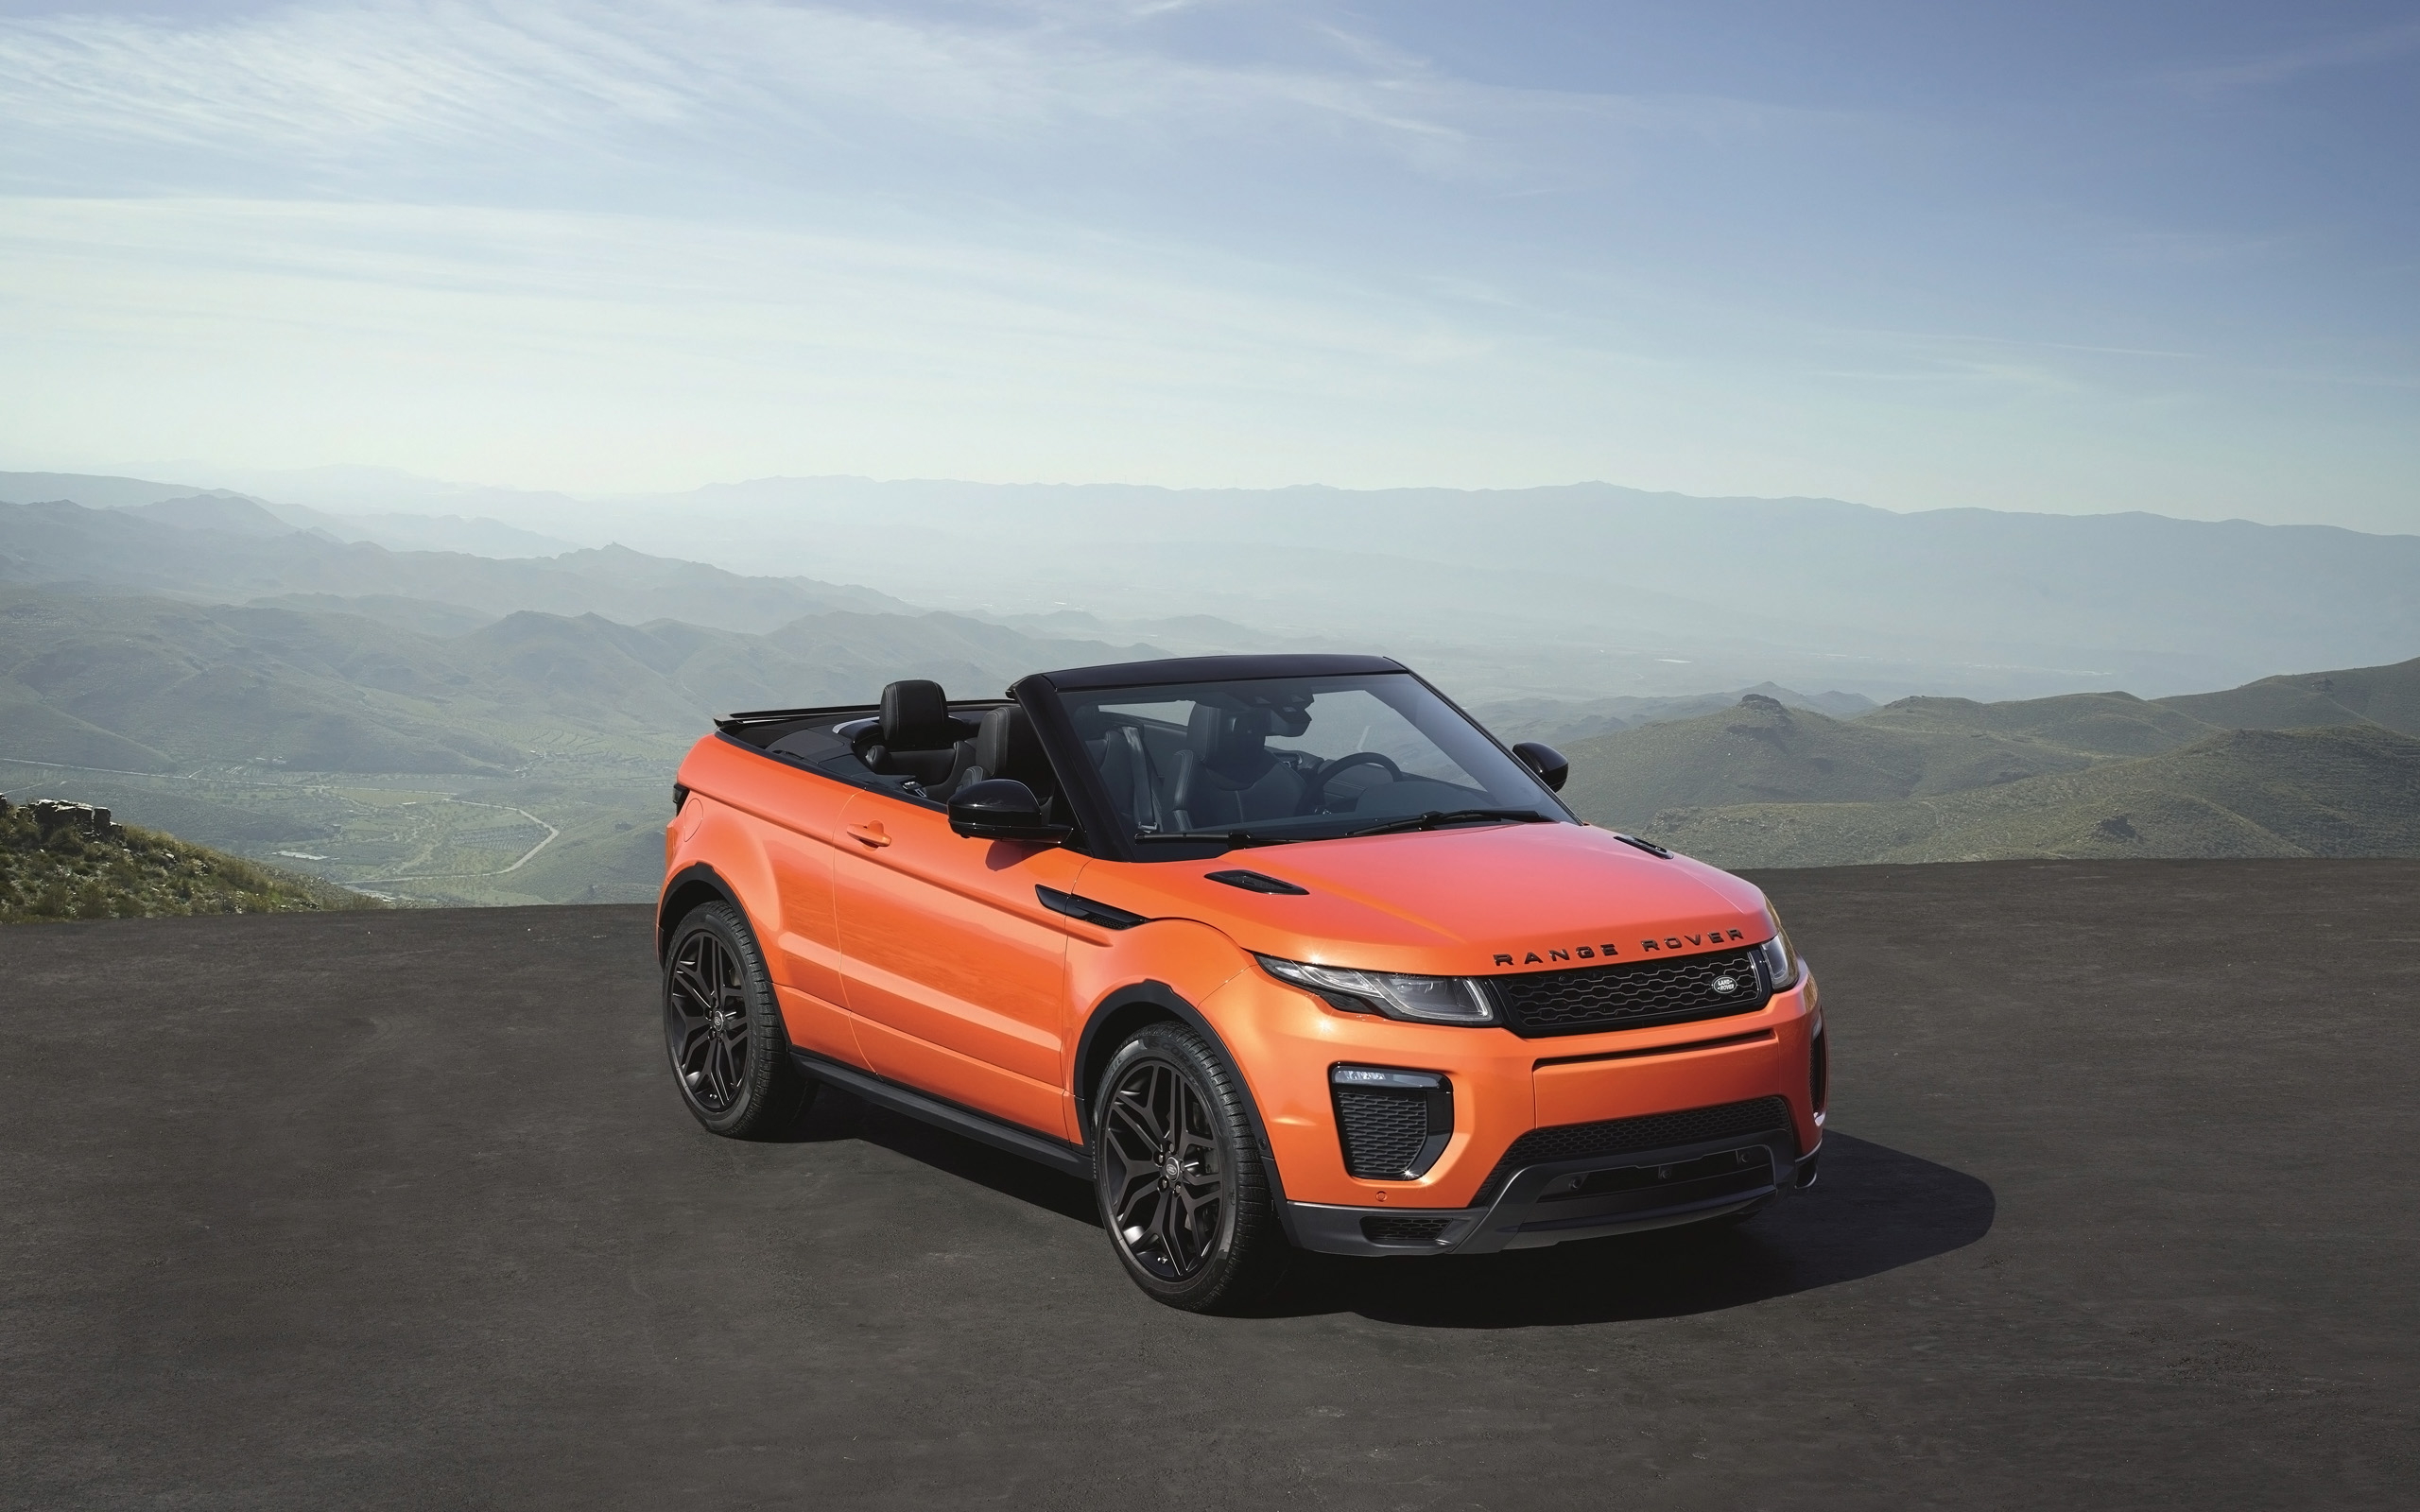 2016 land rover range rover evoque convertible 2 wallpaper hd car wallpapers id 5955. Black Bedroom Furniture Sets. Home Design Ideas